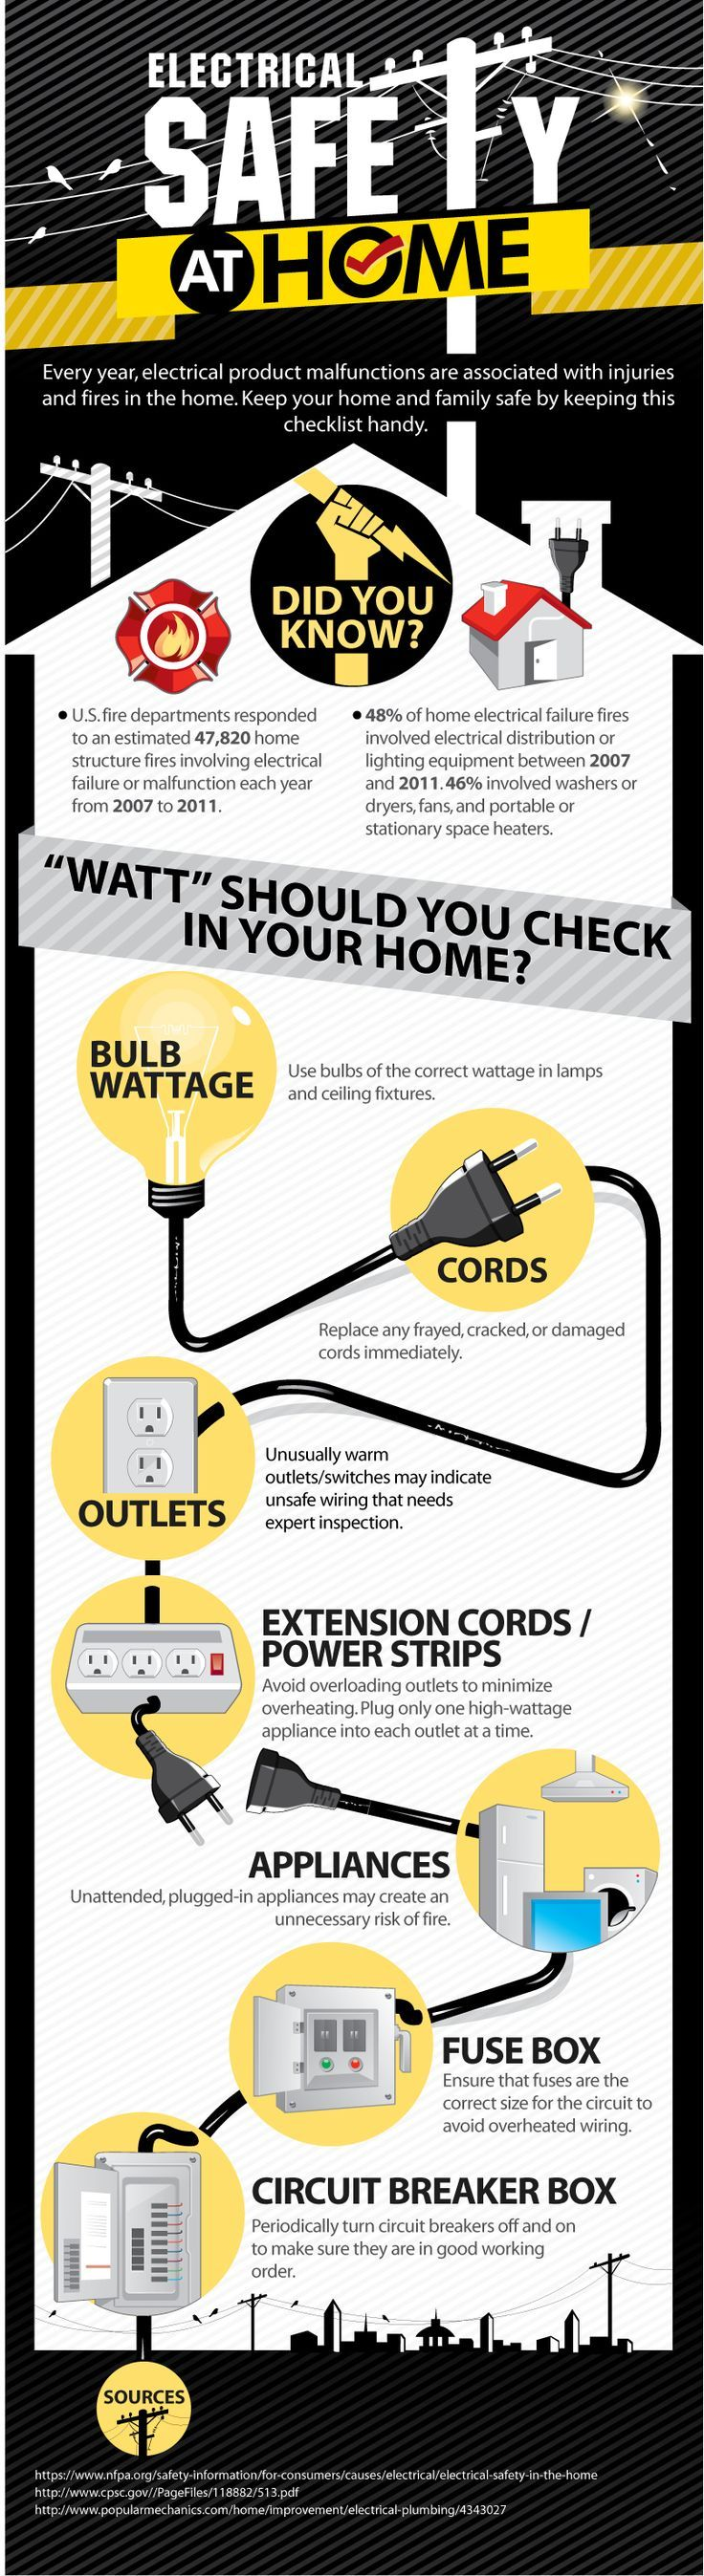 Electrical safety tips Home safety tips, Electrical